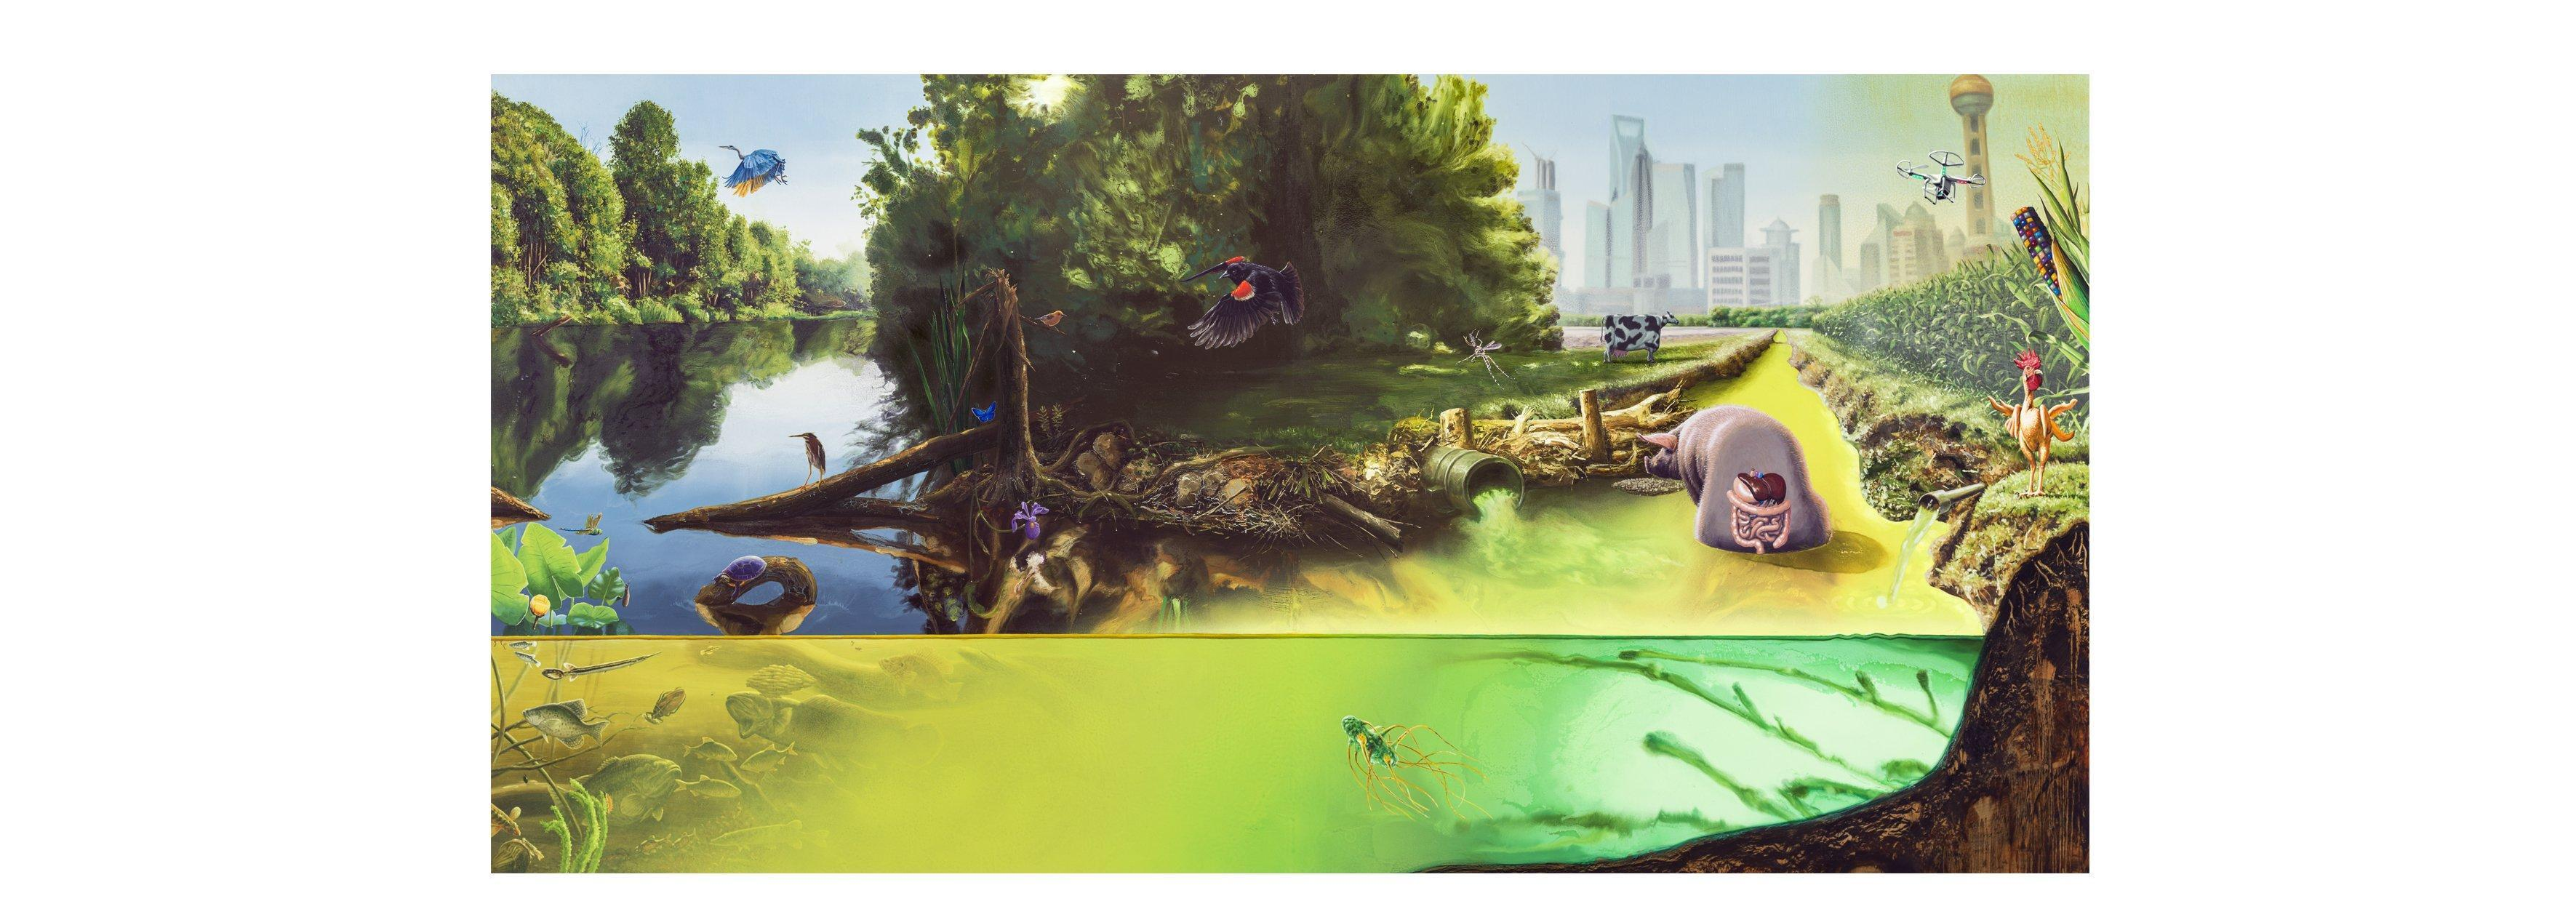 """Watershed"" from the exhibition ""The Great Lakes Cycle"" by Alexis Rockman"